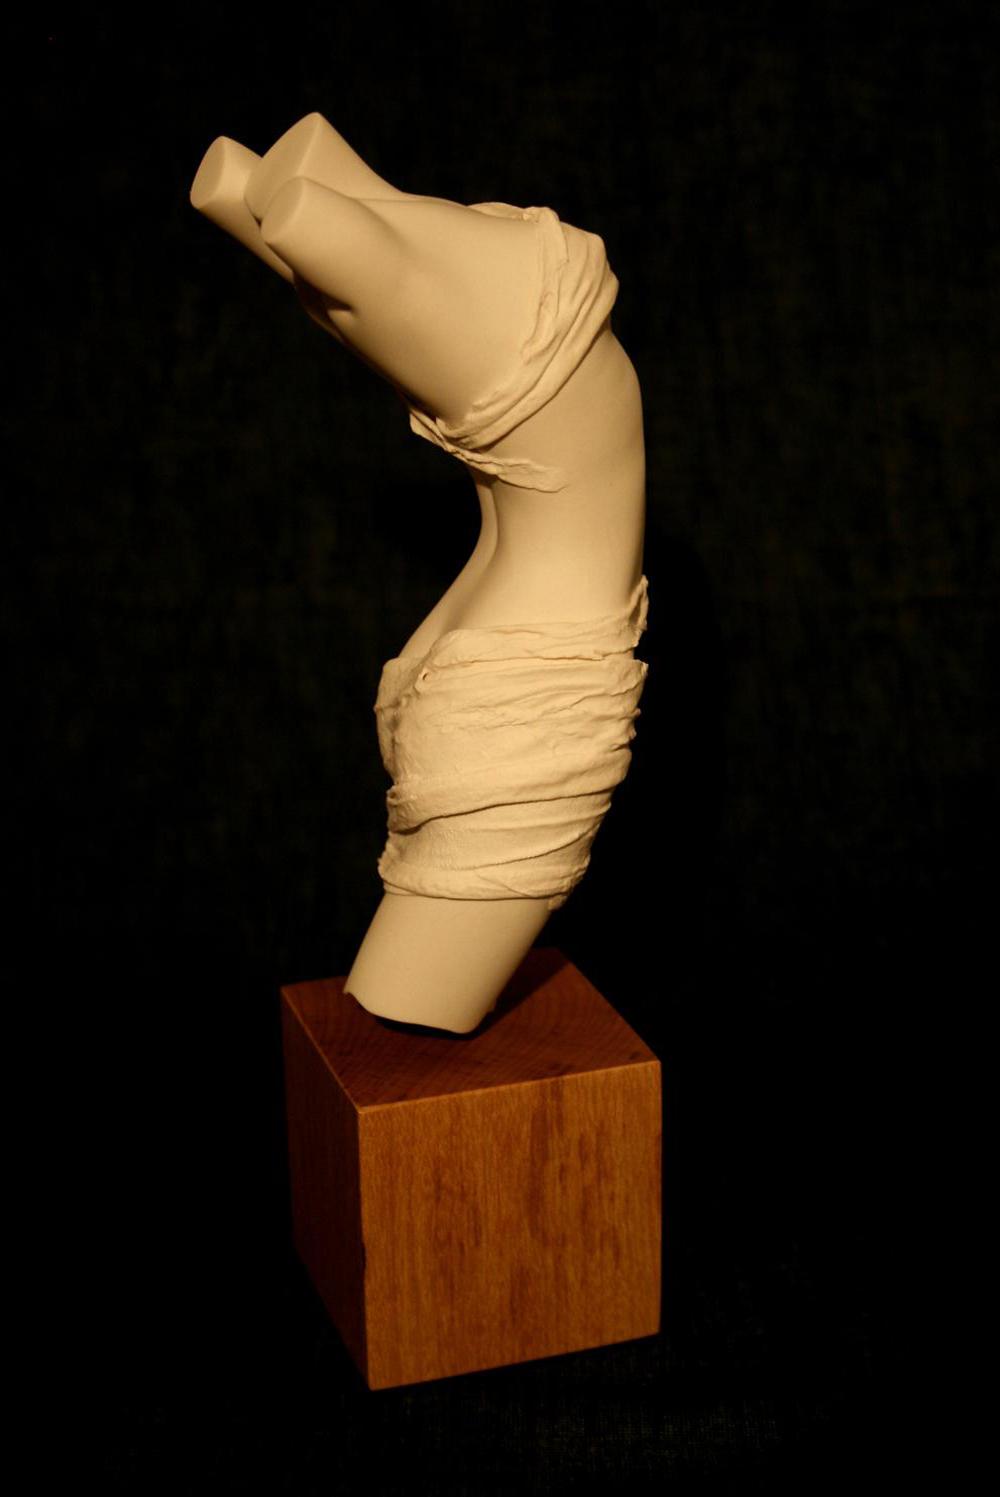 Rapture £170 Porcelain. Dimensions: 260mm x 70mm x 80mm Signed edition. In stock